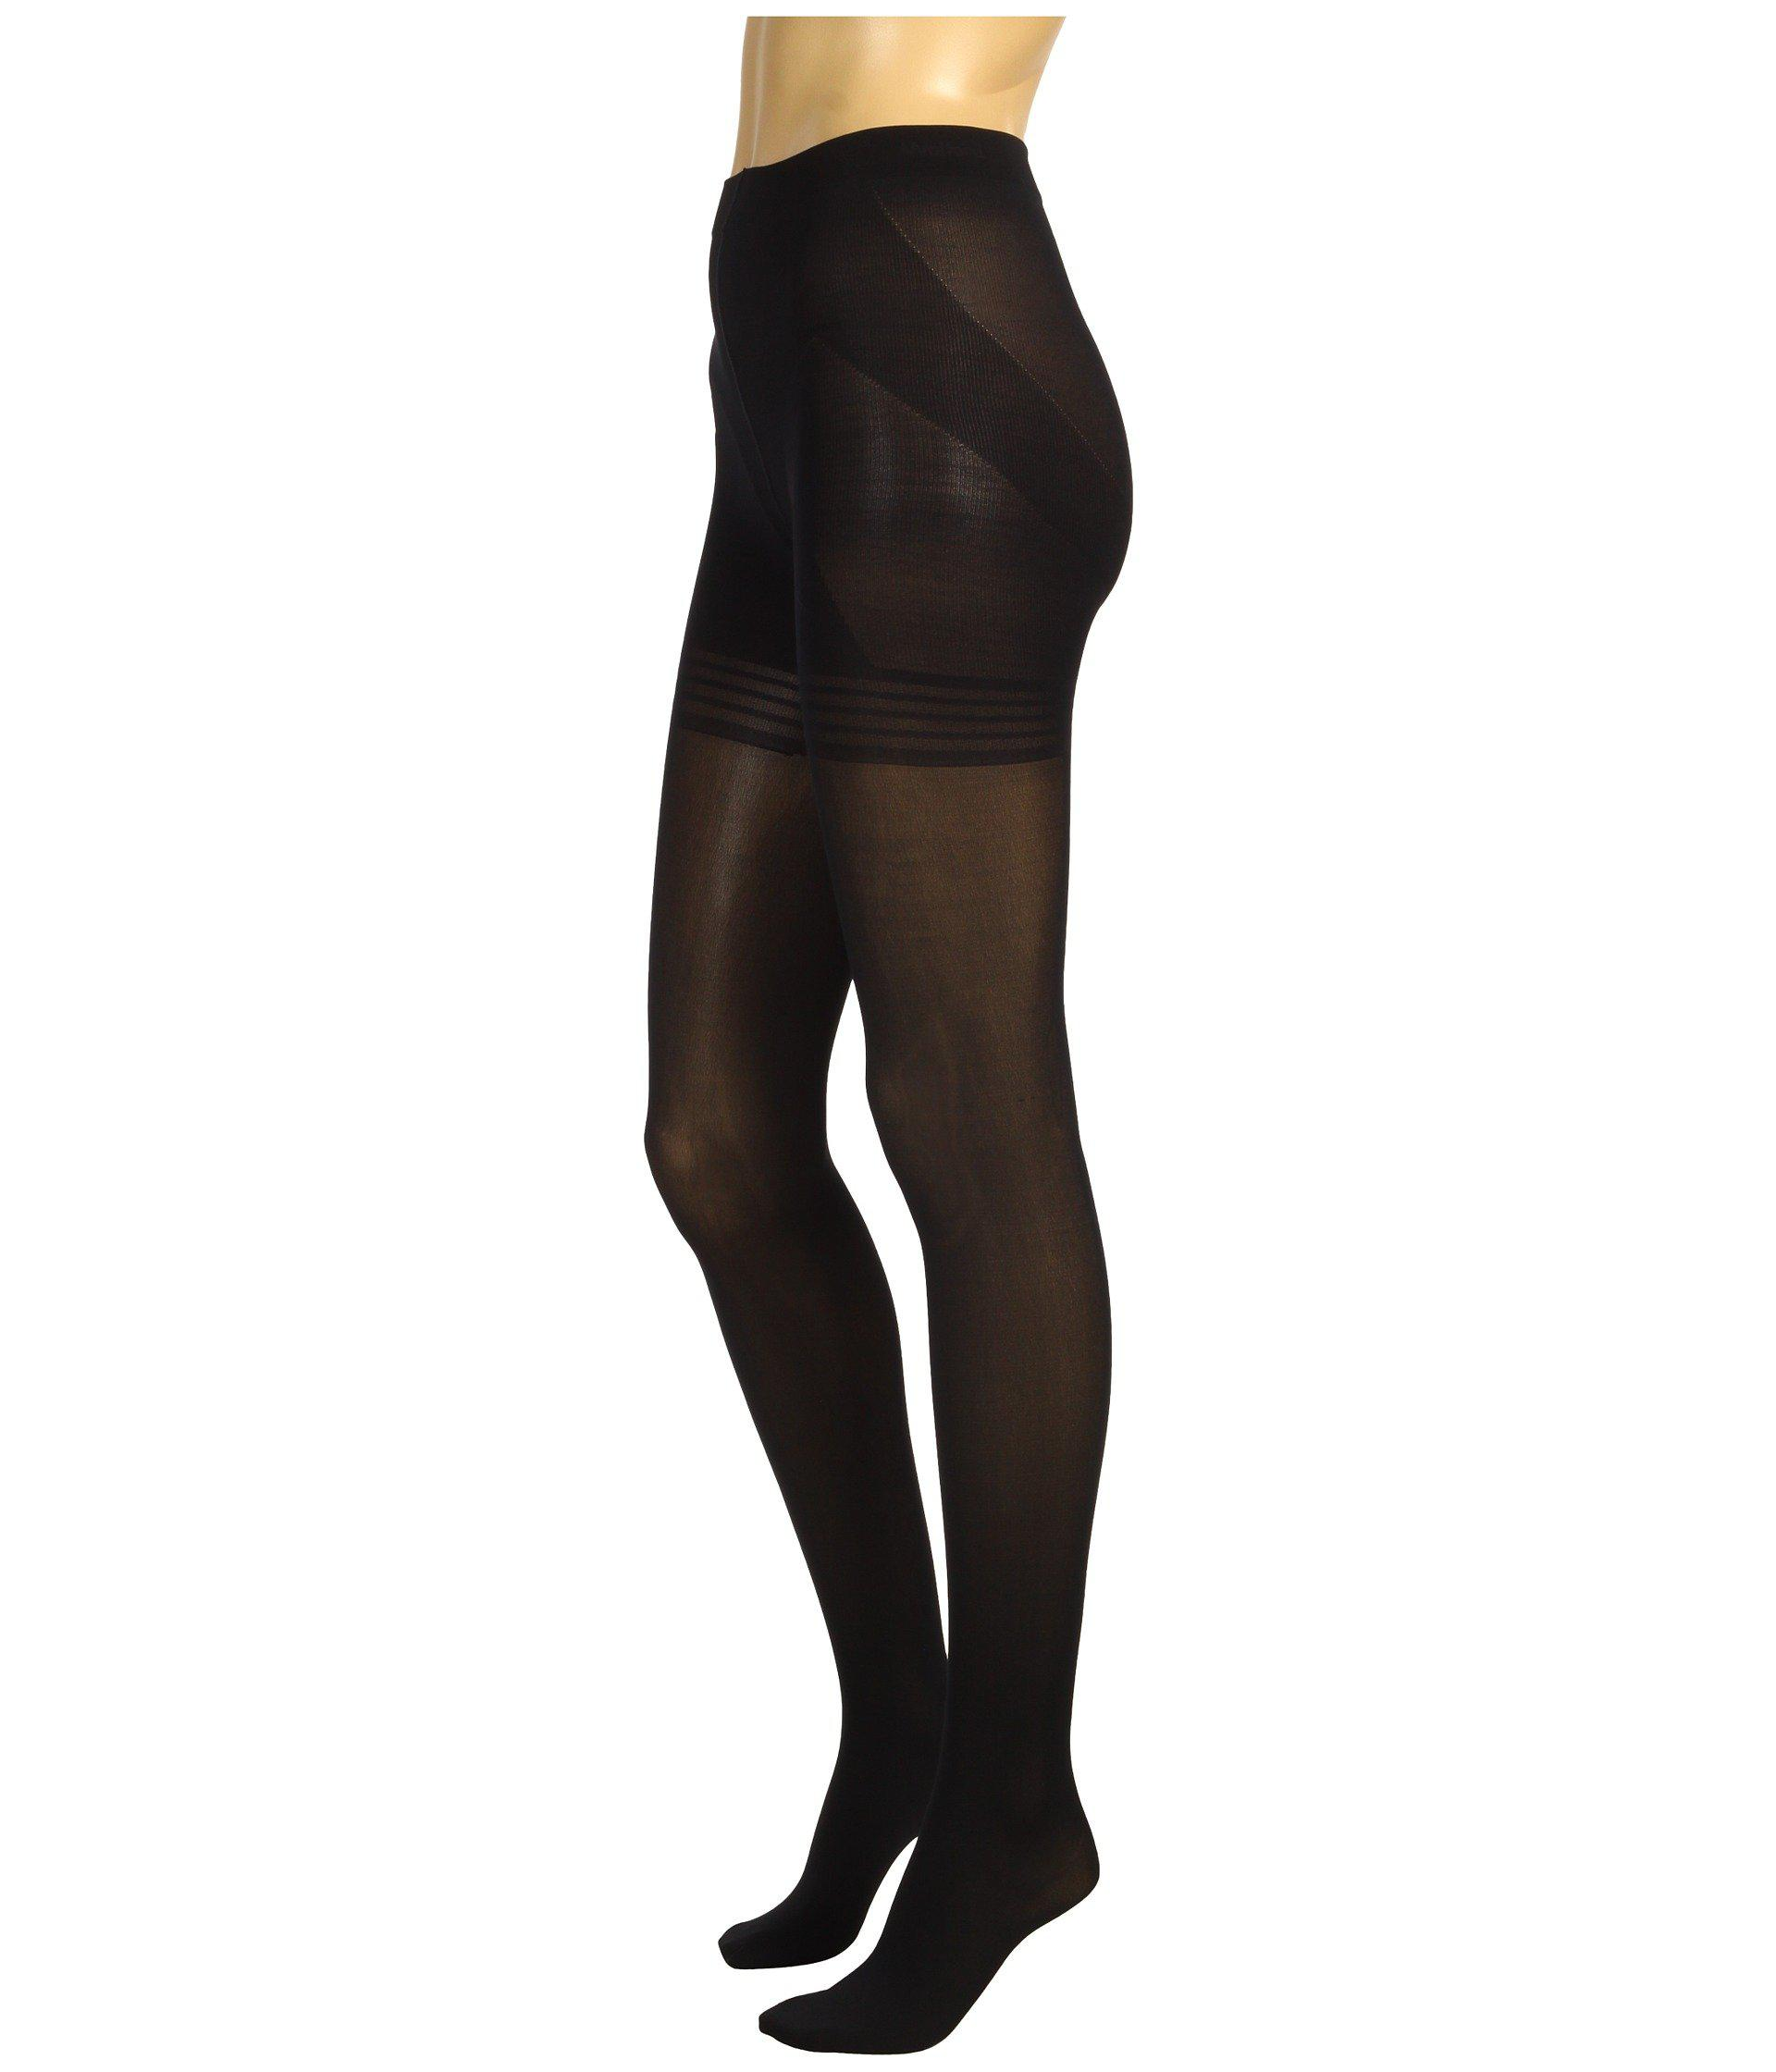 f6ce7c13a1 Lyst - Wolford Power Shape 50 Control Top Tights (black) Control Top Hose  in Black